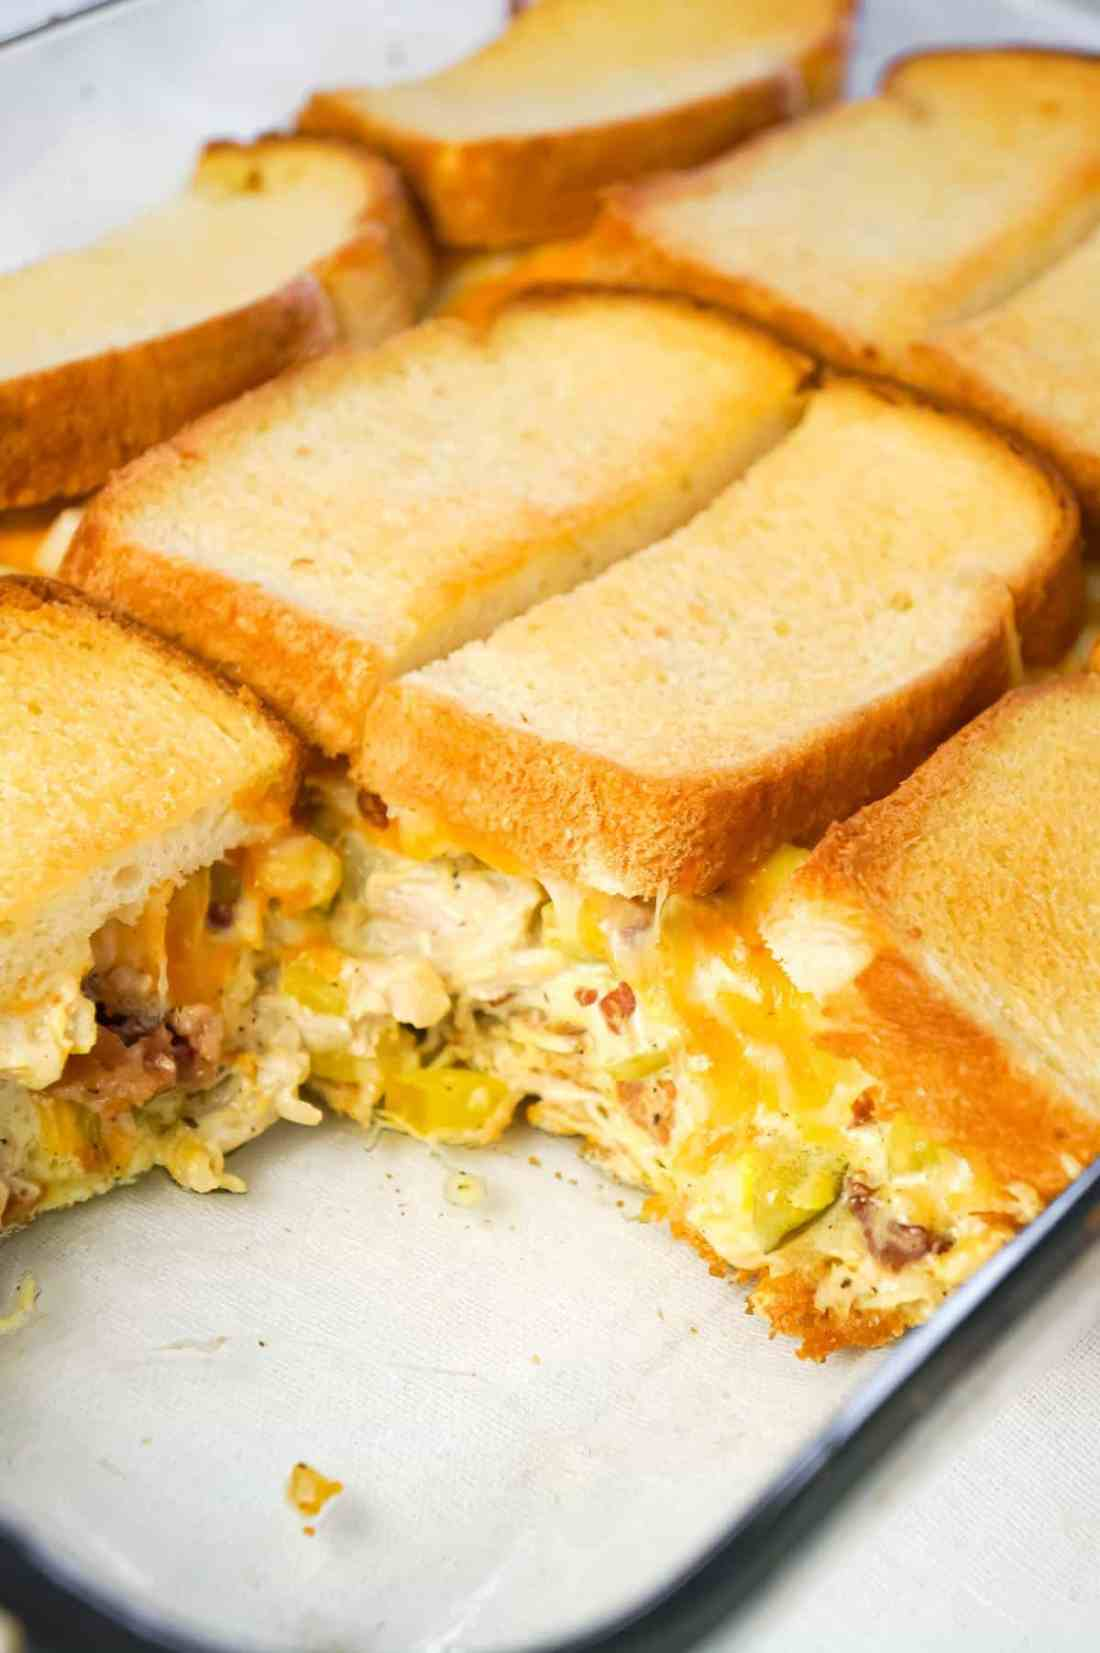 Dill Pickle Chicken Grilled Cheese Casserole is a delicious dinner recipe loaded with shredded chicken, diced dill pickles, crumbled bacon, ranch dressing and cheese all in between layers of toasted bread.